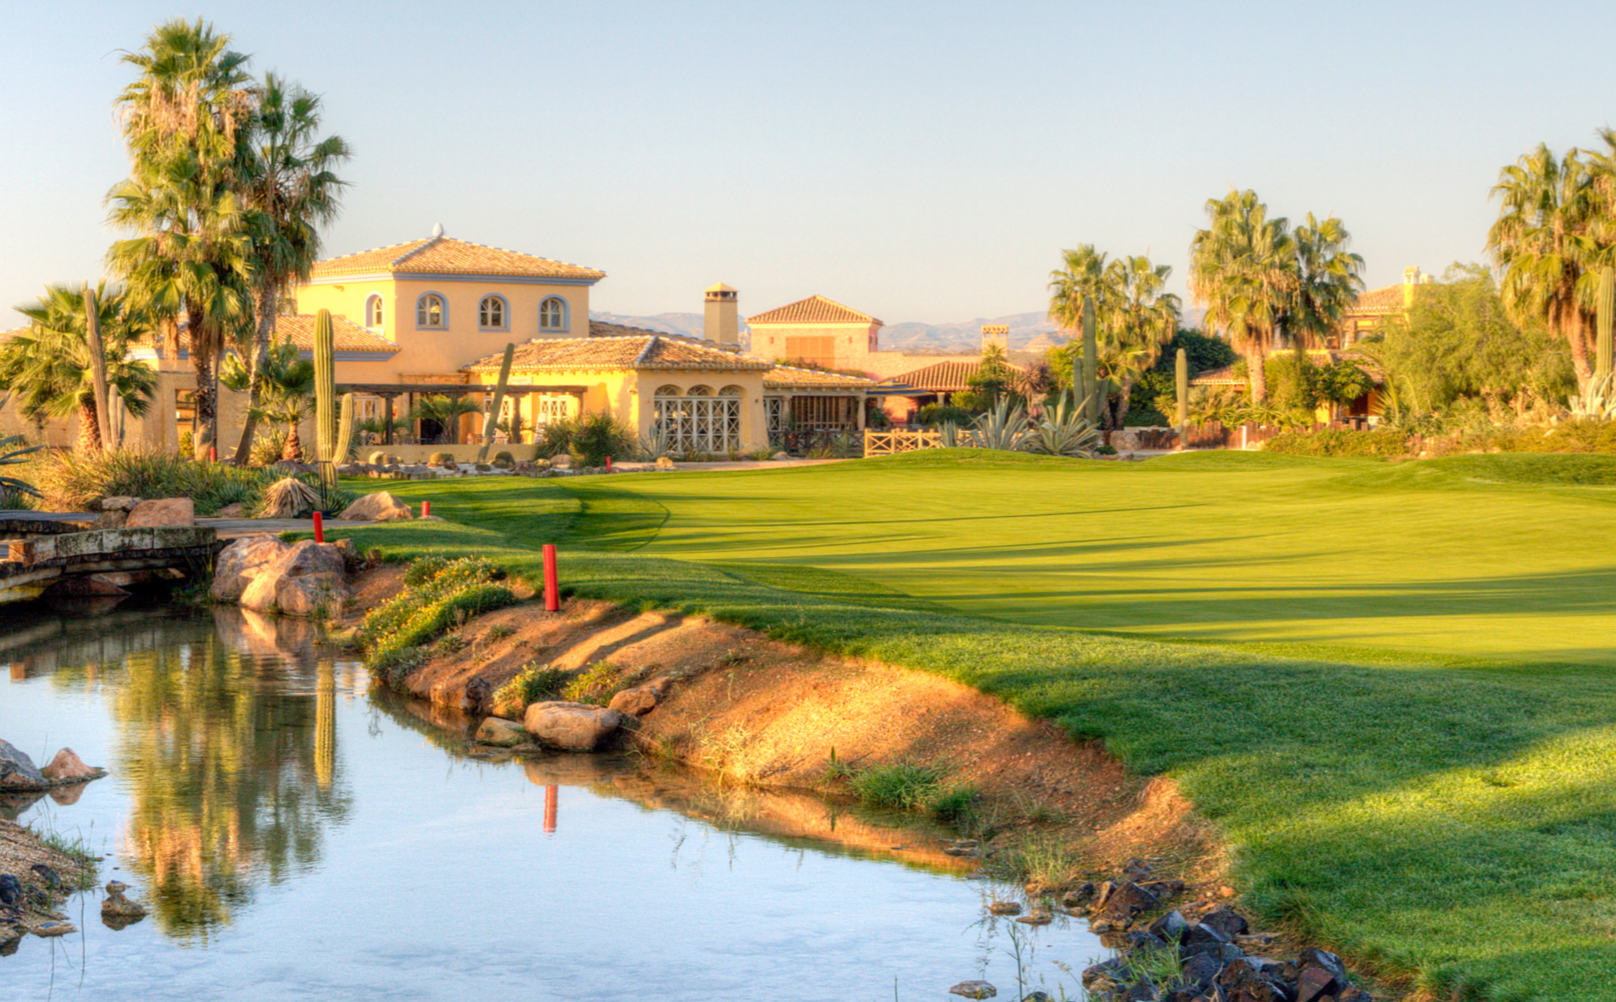 WIN A GOLF BREAK AT DESERT SPRINGS sweepstakes